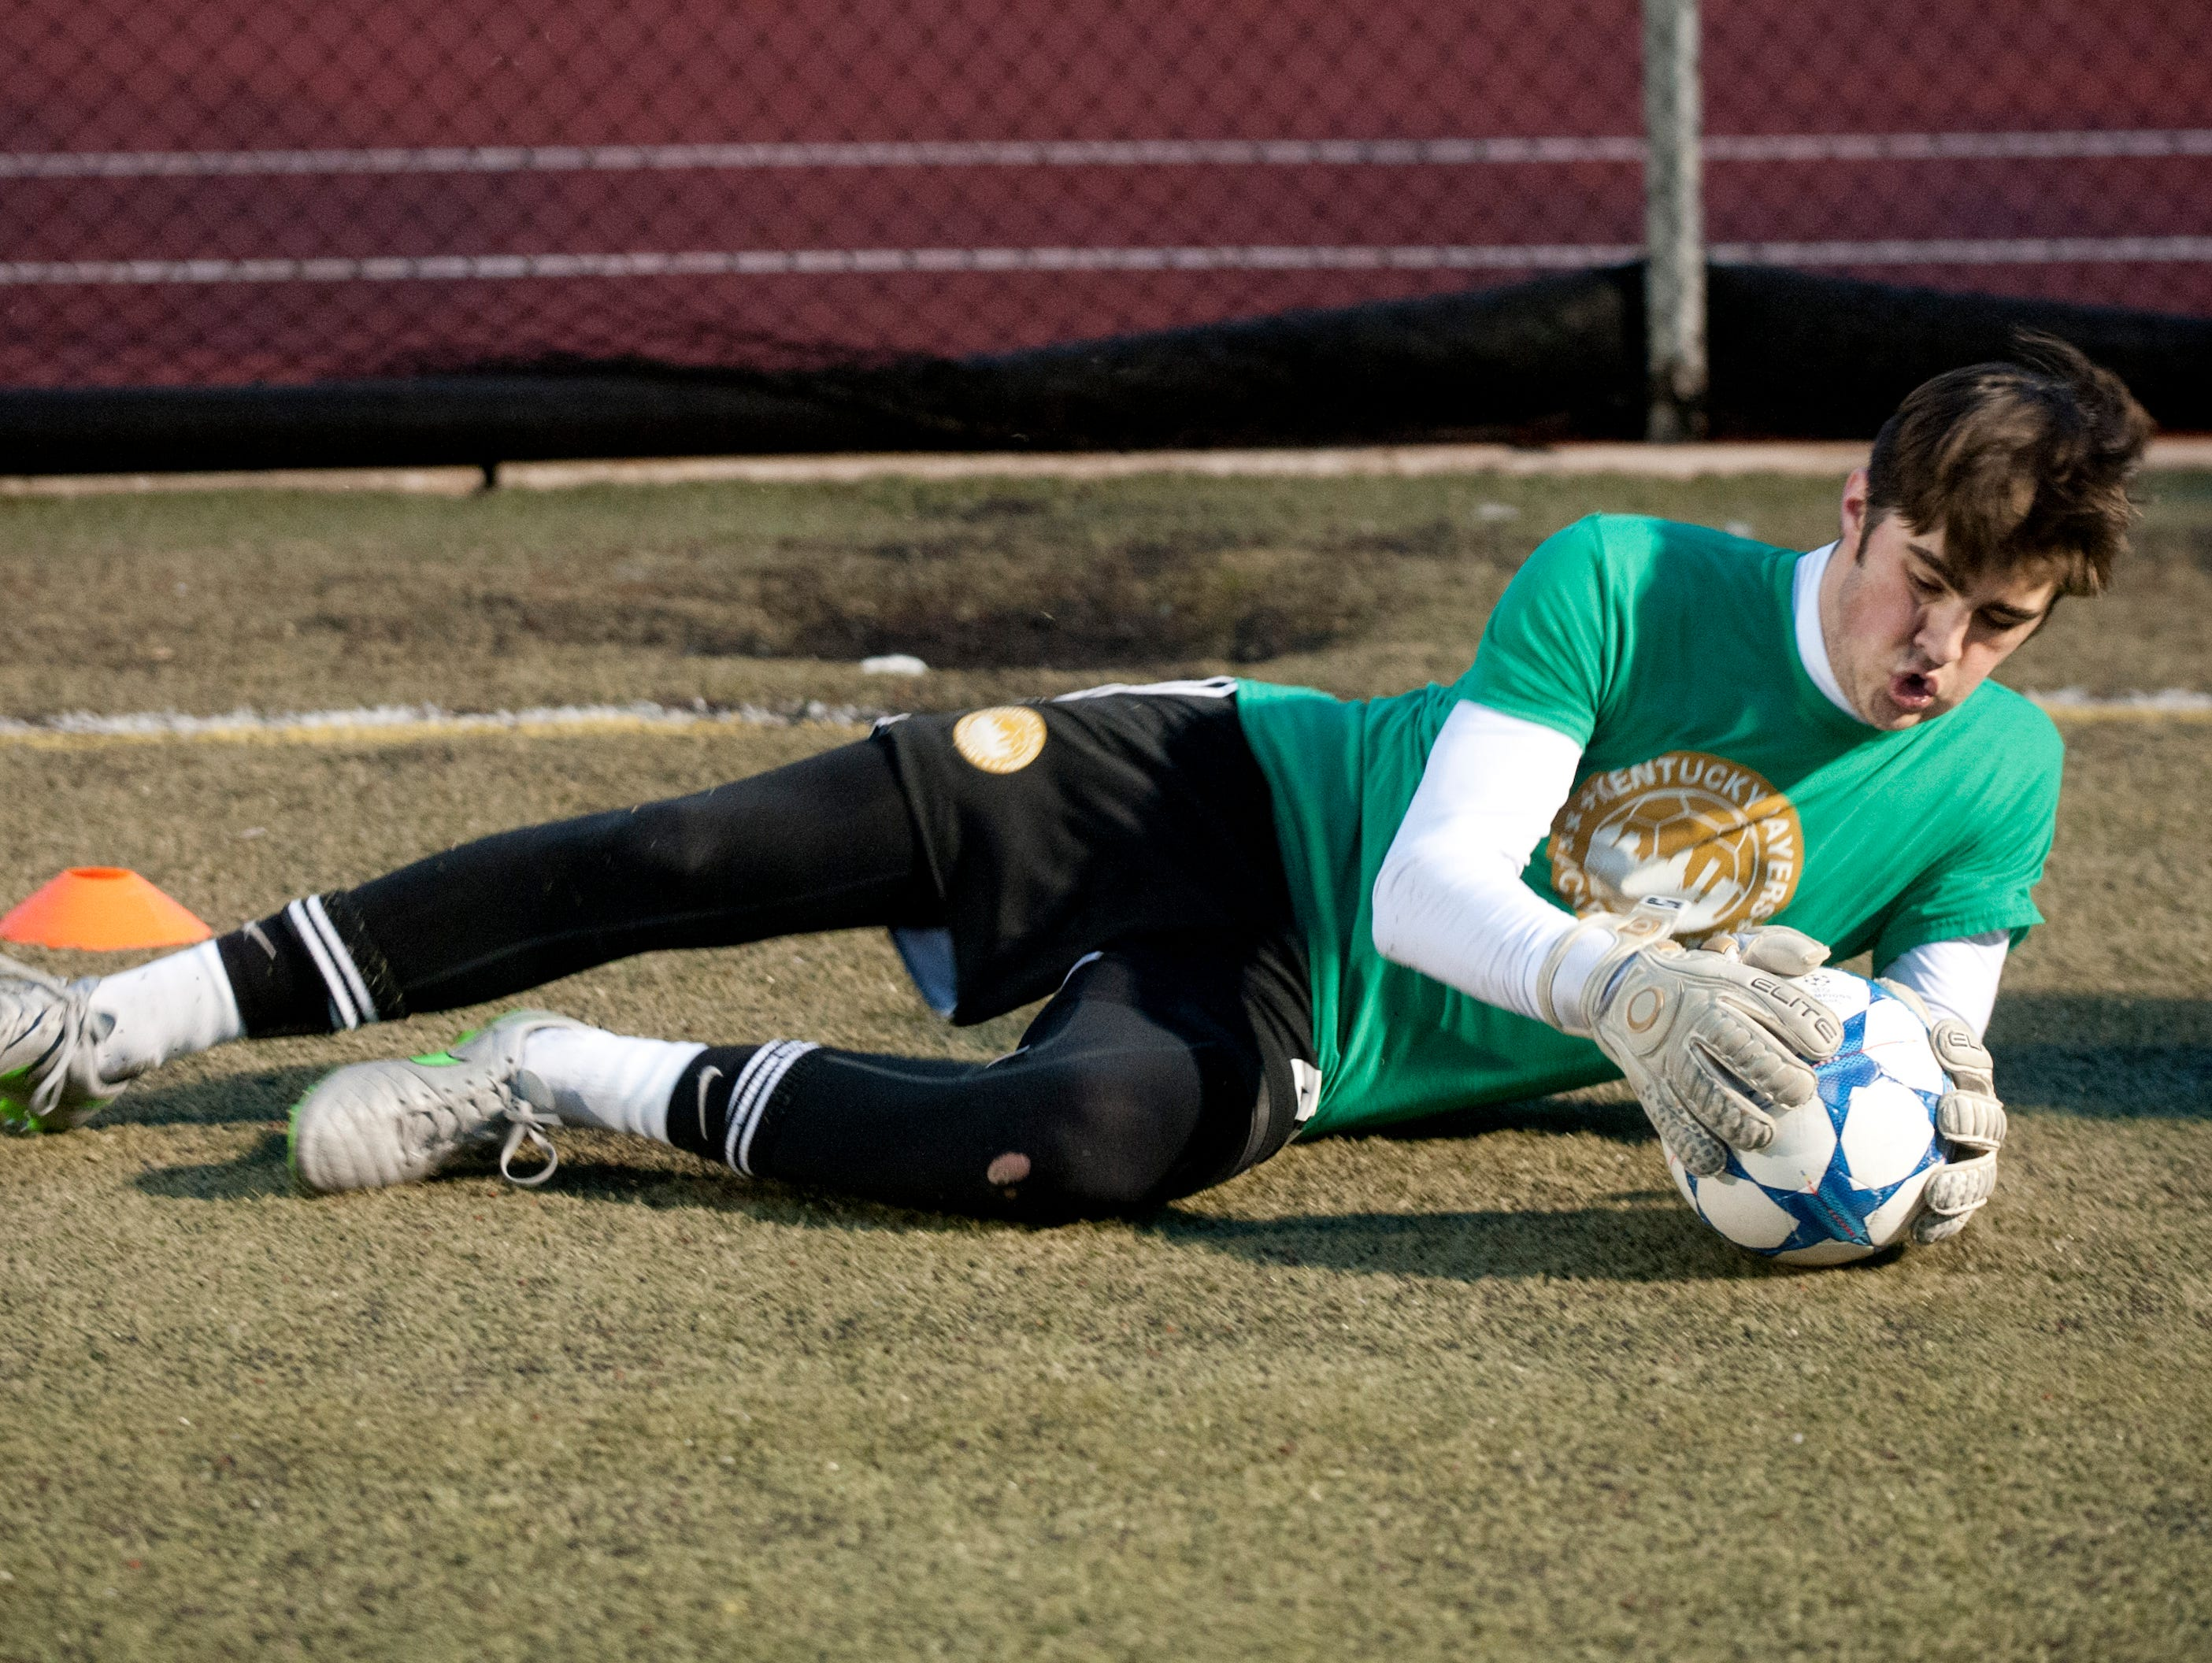 Kentucky Players Academy goalkeeper Aaron Stocksdale catches a ball during practice at St. Xavier High School's field. 15 February, 2016